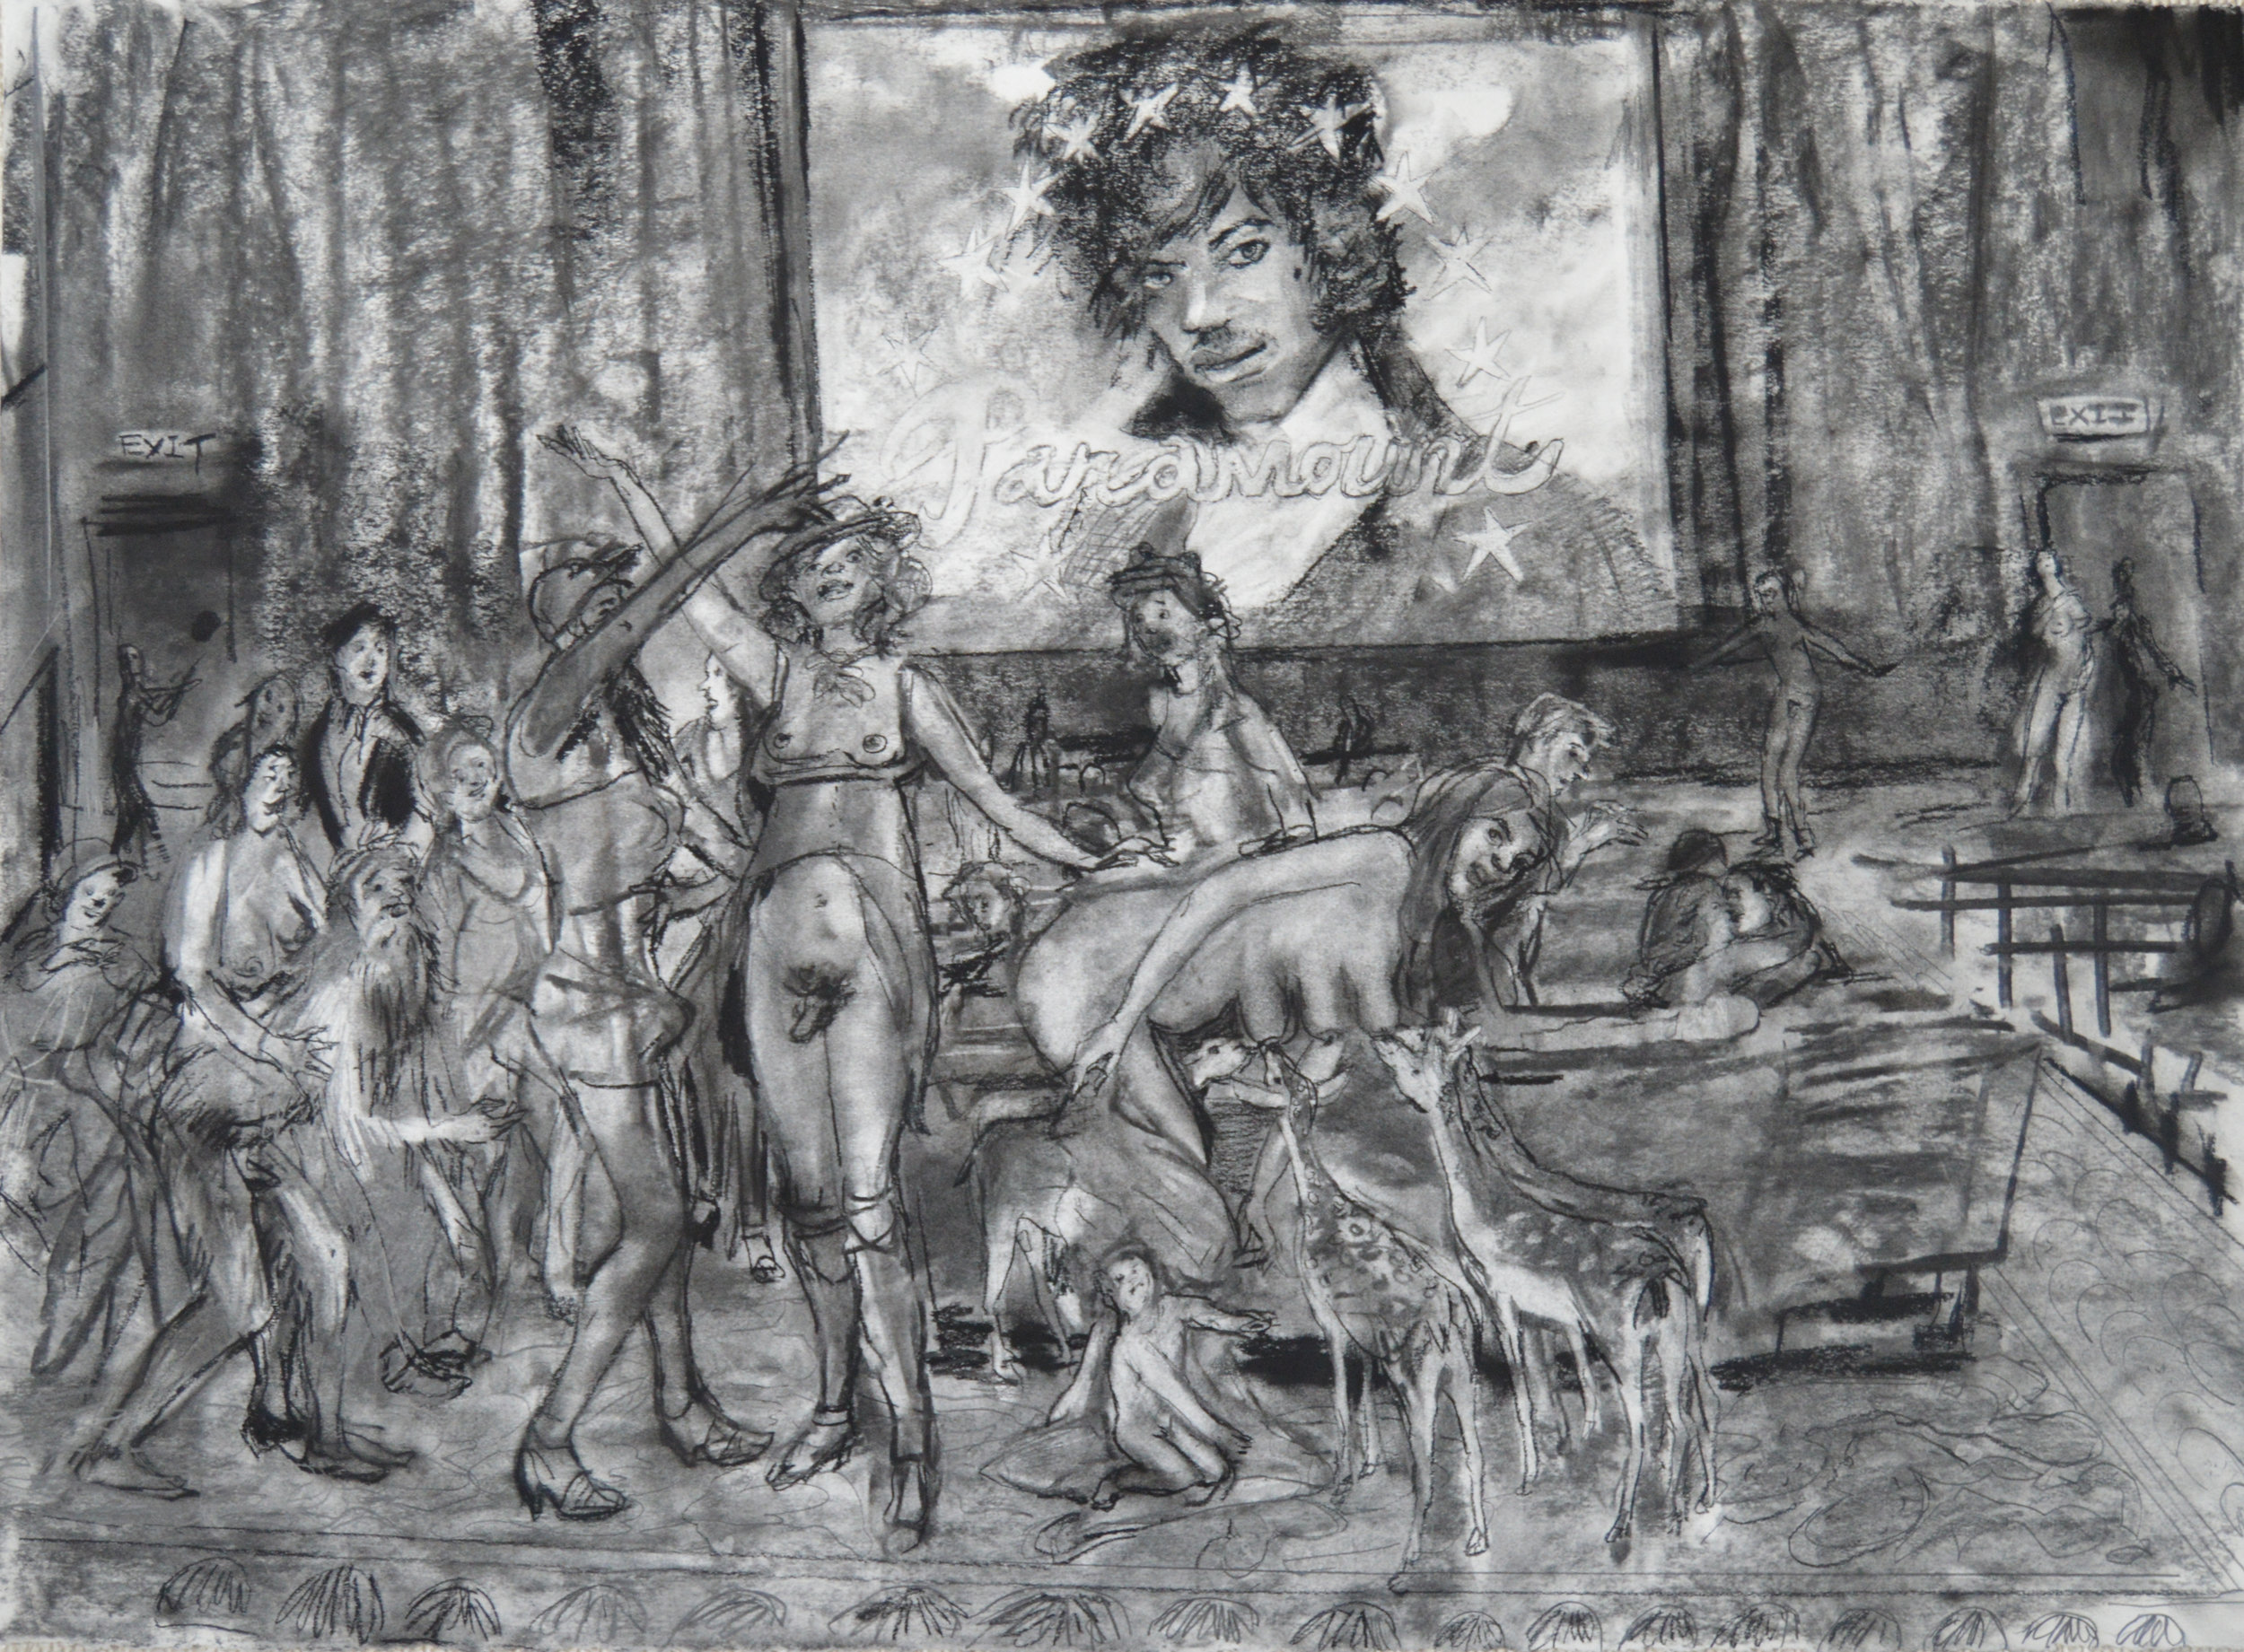 ast Picture Show  charcoal 28 by 40 inches 2015.jpg